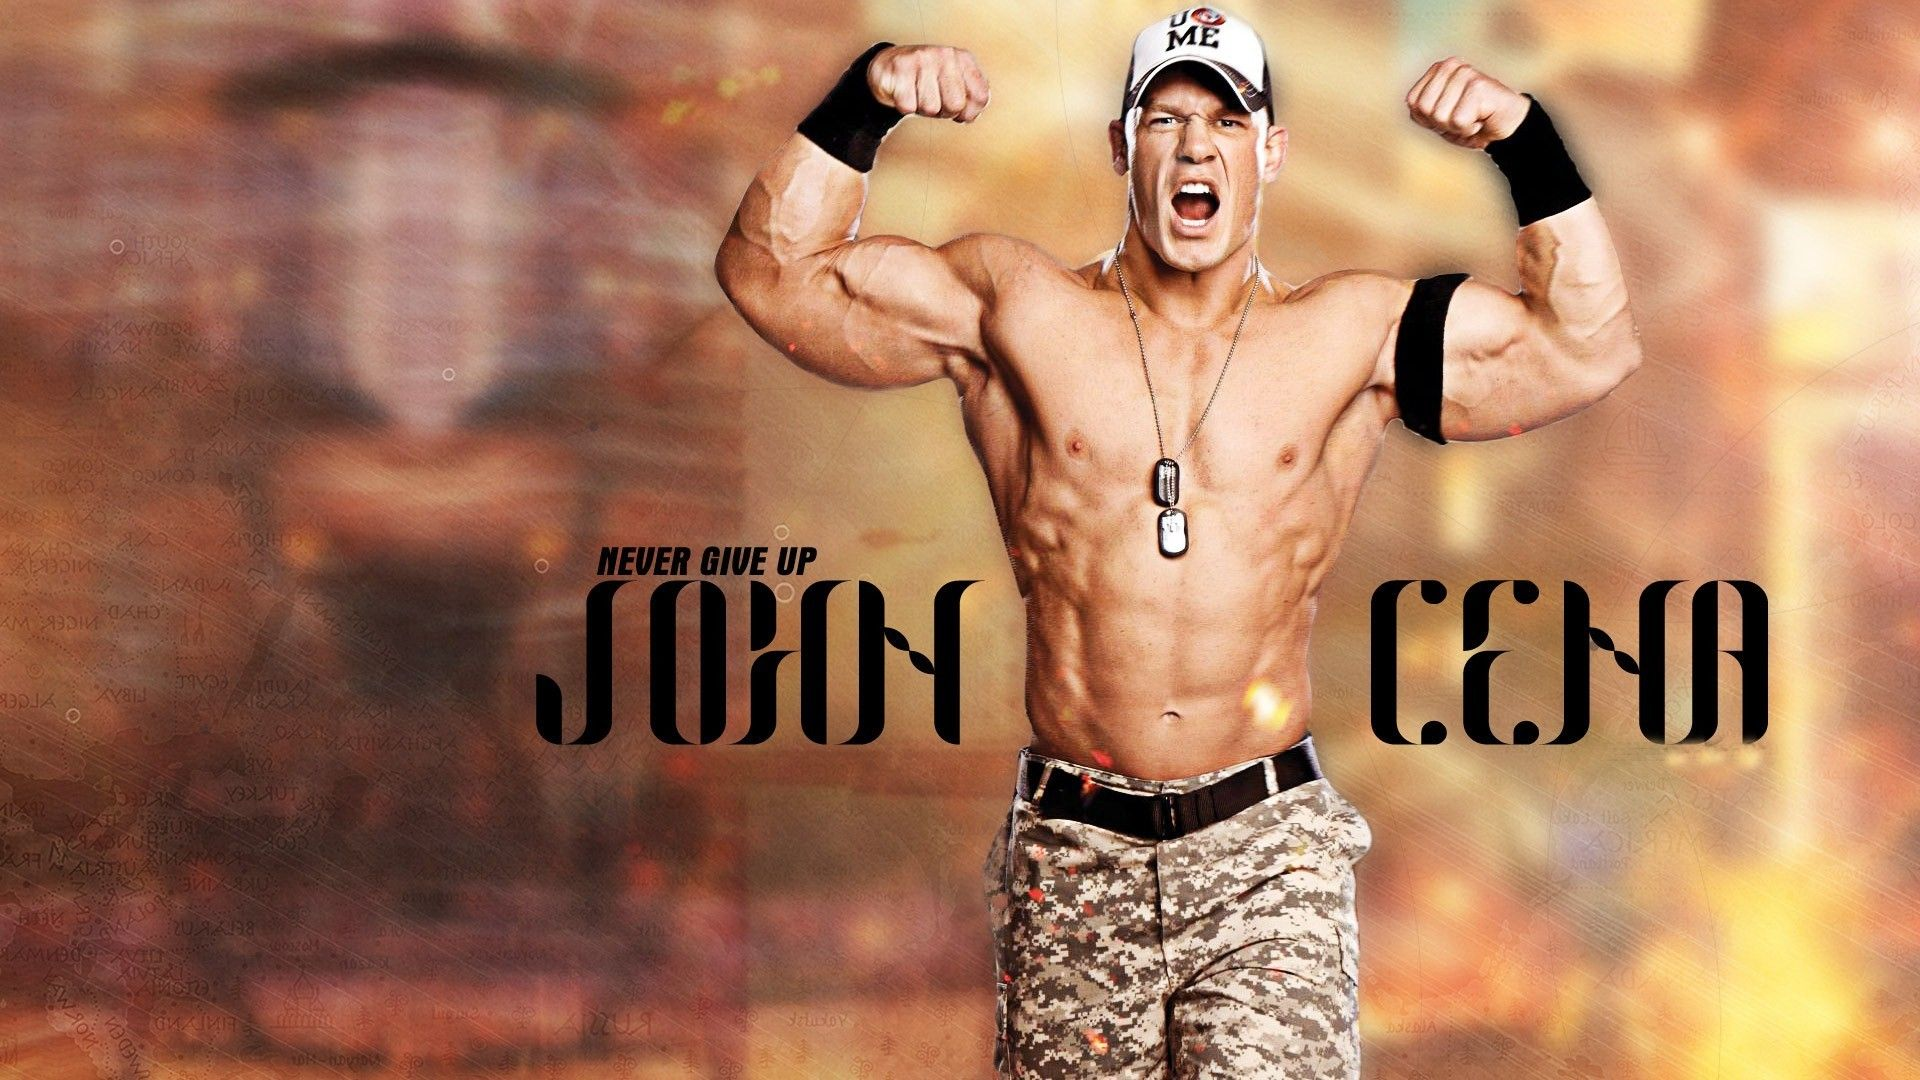 John Cena HD wallpaper for download